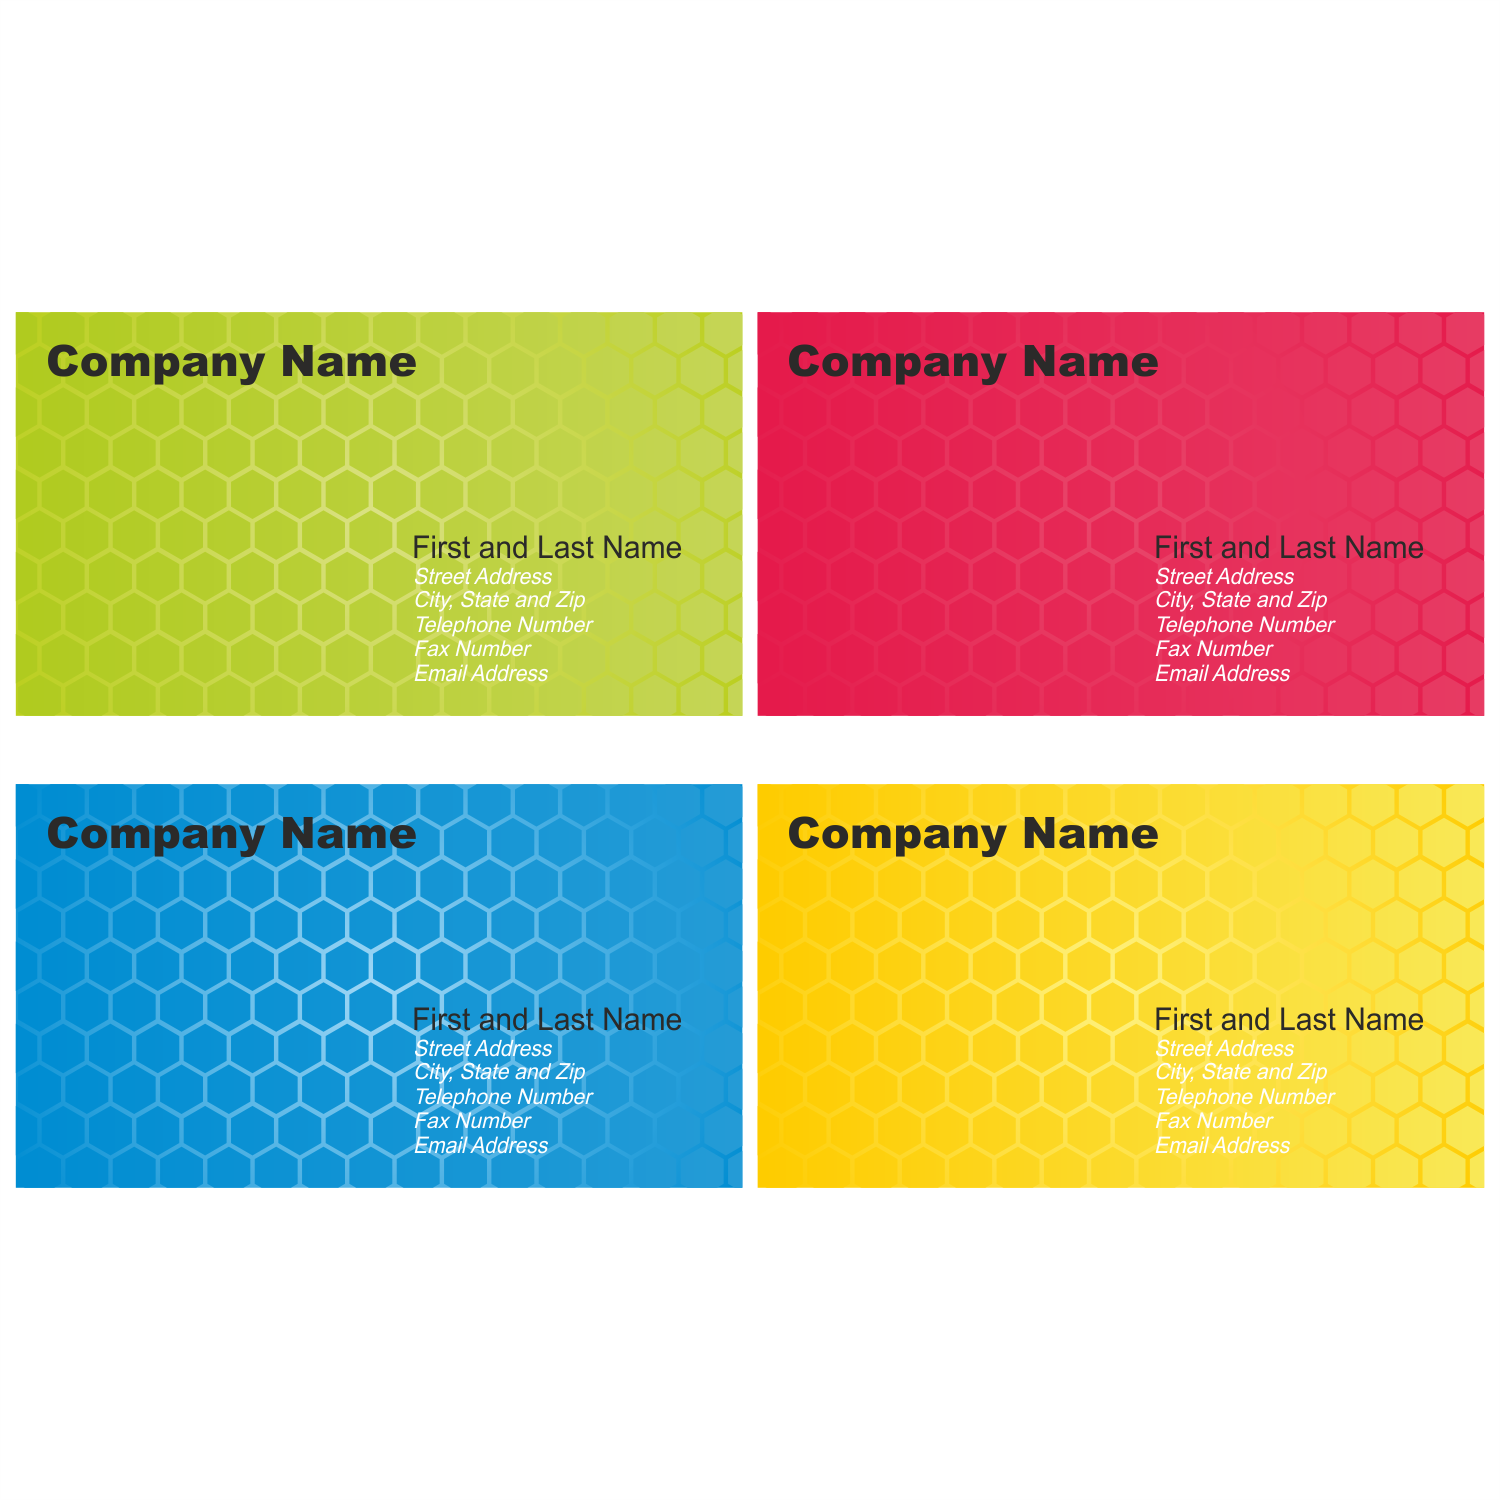 Design business card templates business card sample design business card templates flashek Images